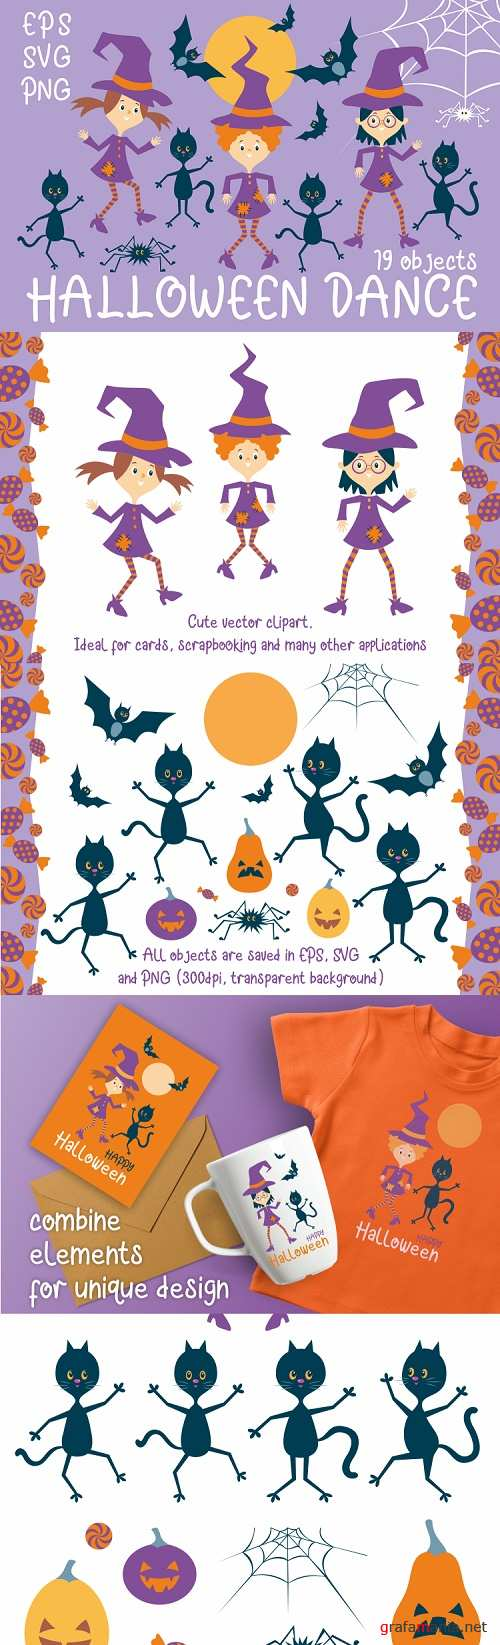 Halloween dance. Funny witches and black cats 363909